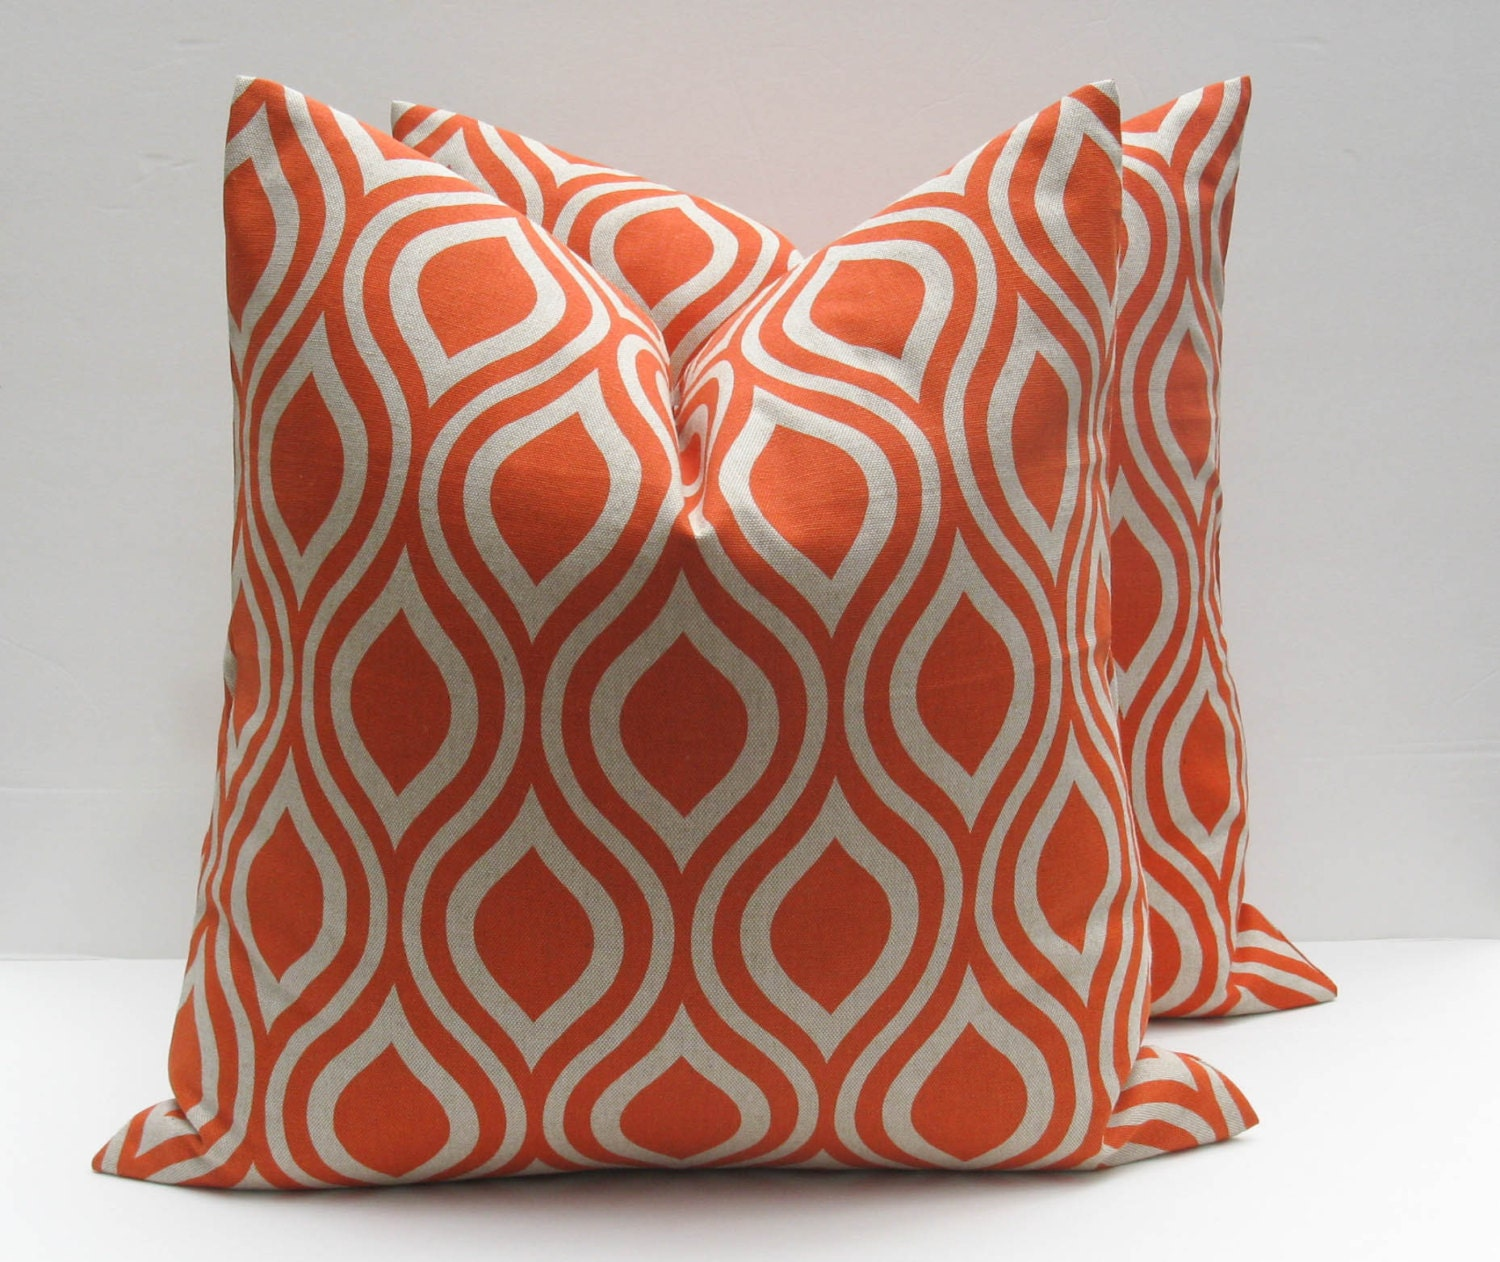 Decorative Throw Pillow Covers Orange Pillow 18x18 by EastAndNest